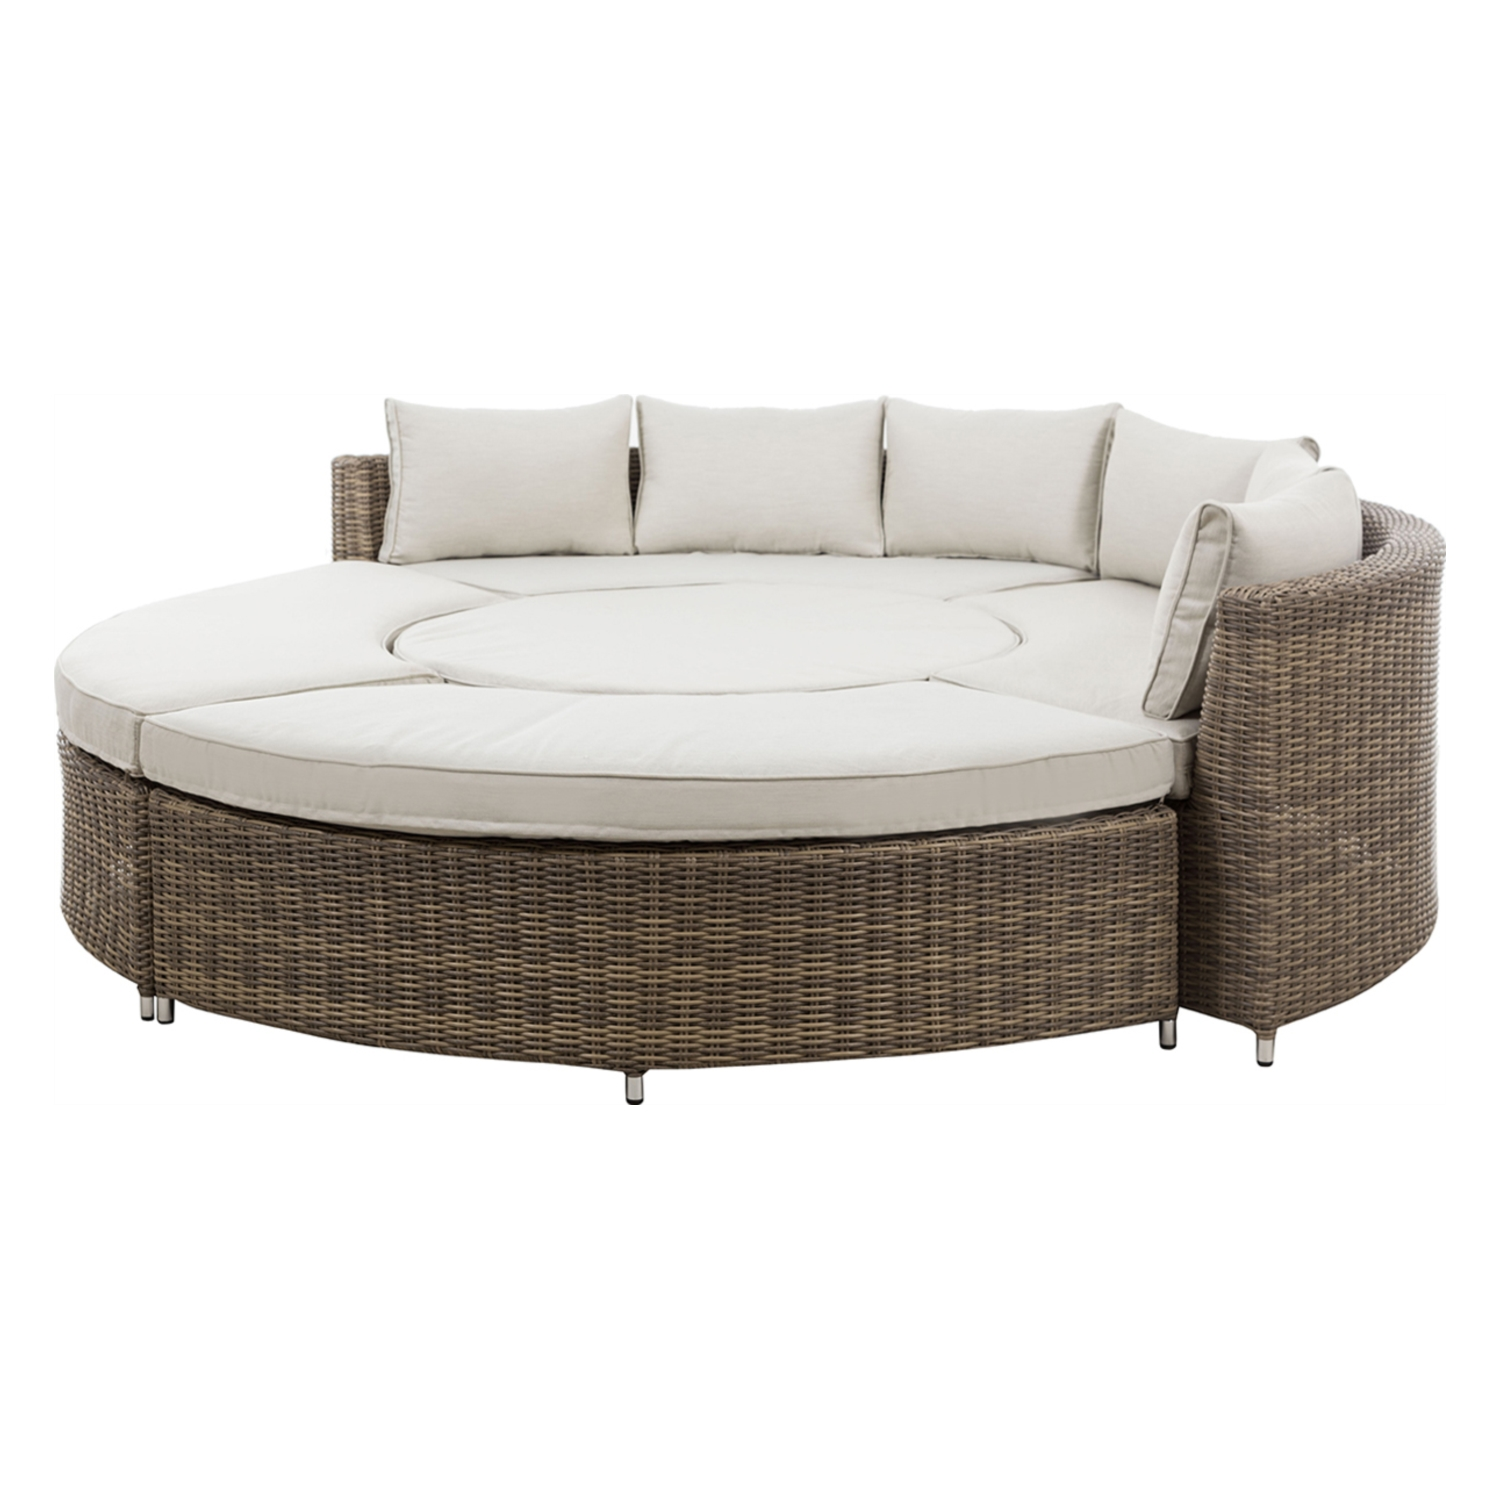 CLARA DAYBED